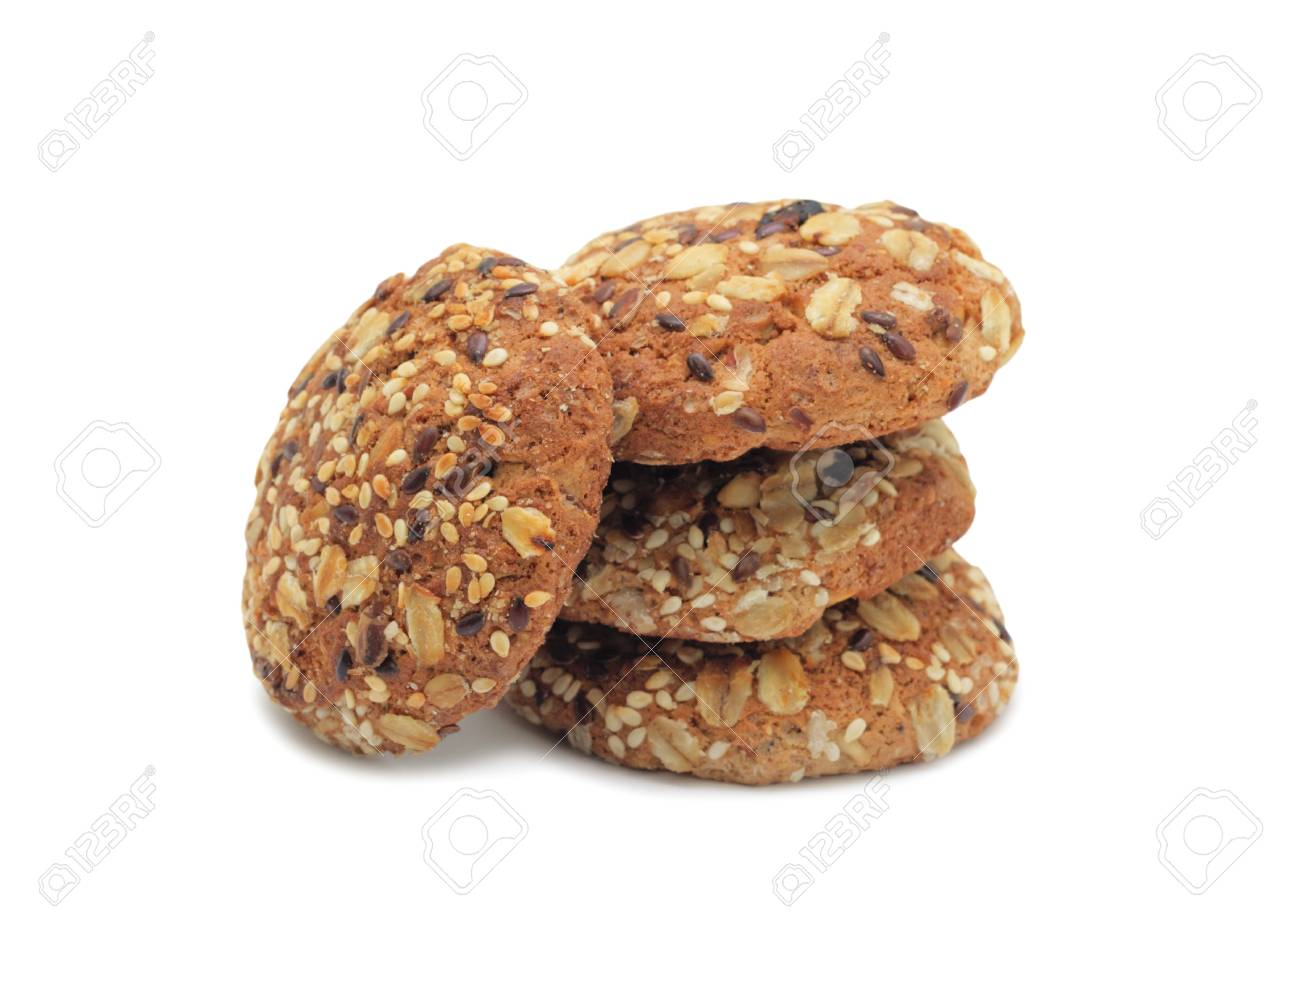 Sweet cookies with seeds, isolated on a white background Stock Photo - 11801933